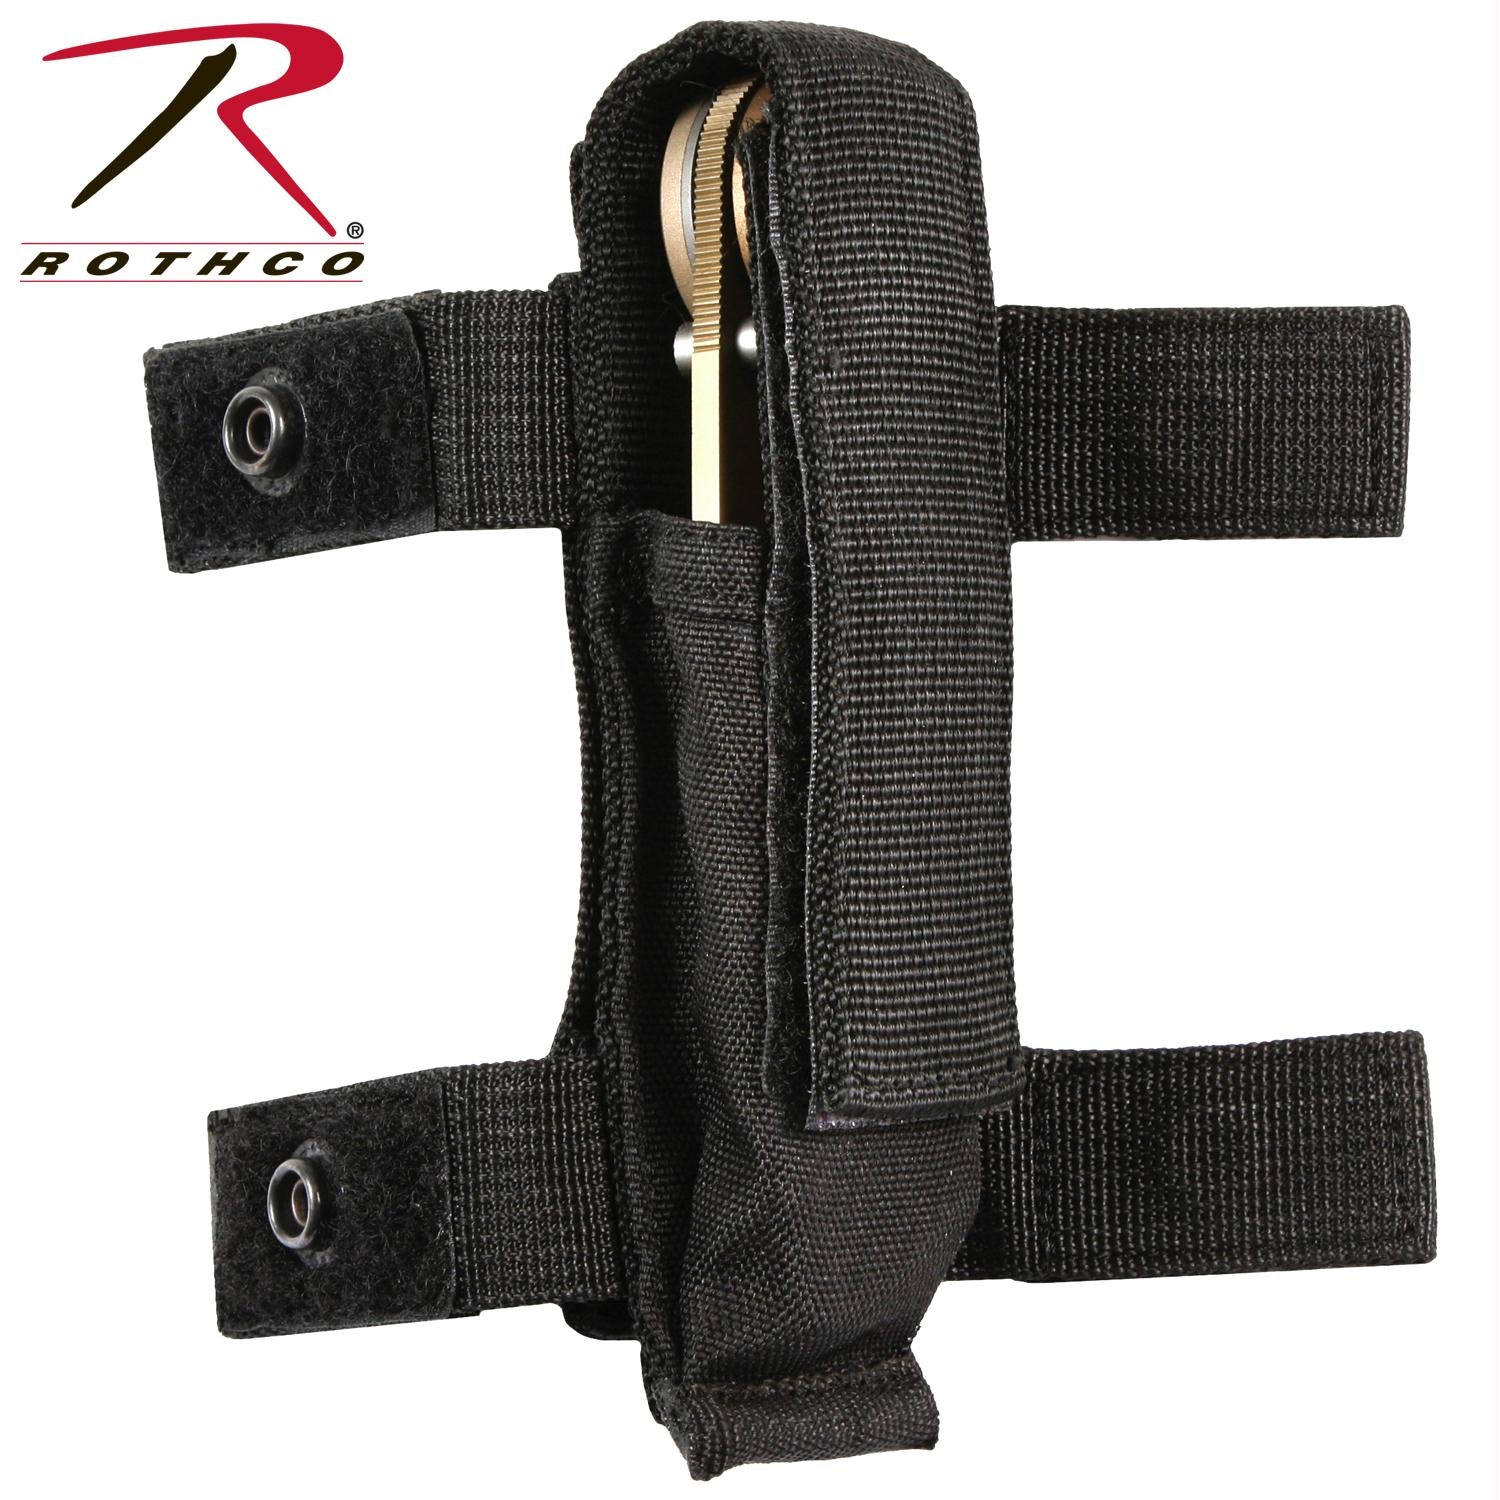 Rothco MOLLE Compatible Knife / Flashlight Sheath - Black